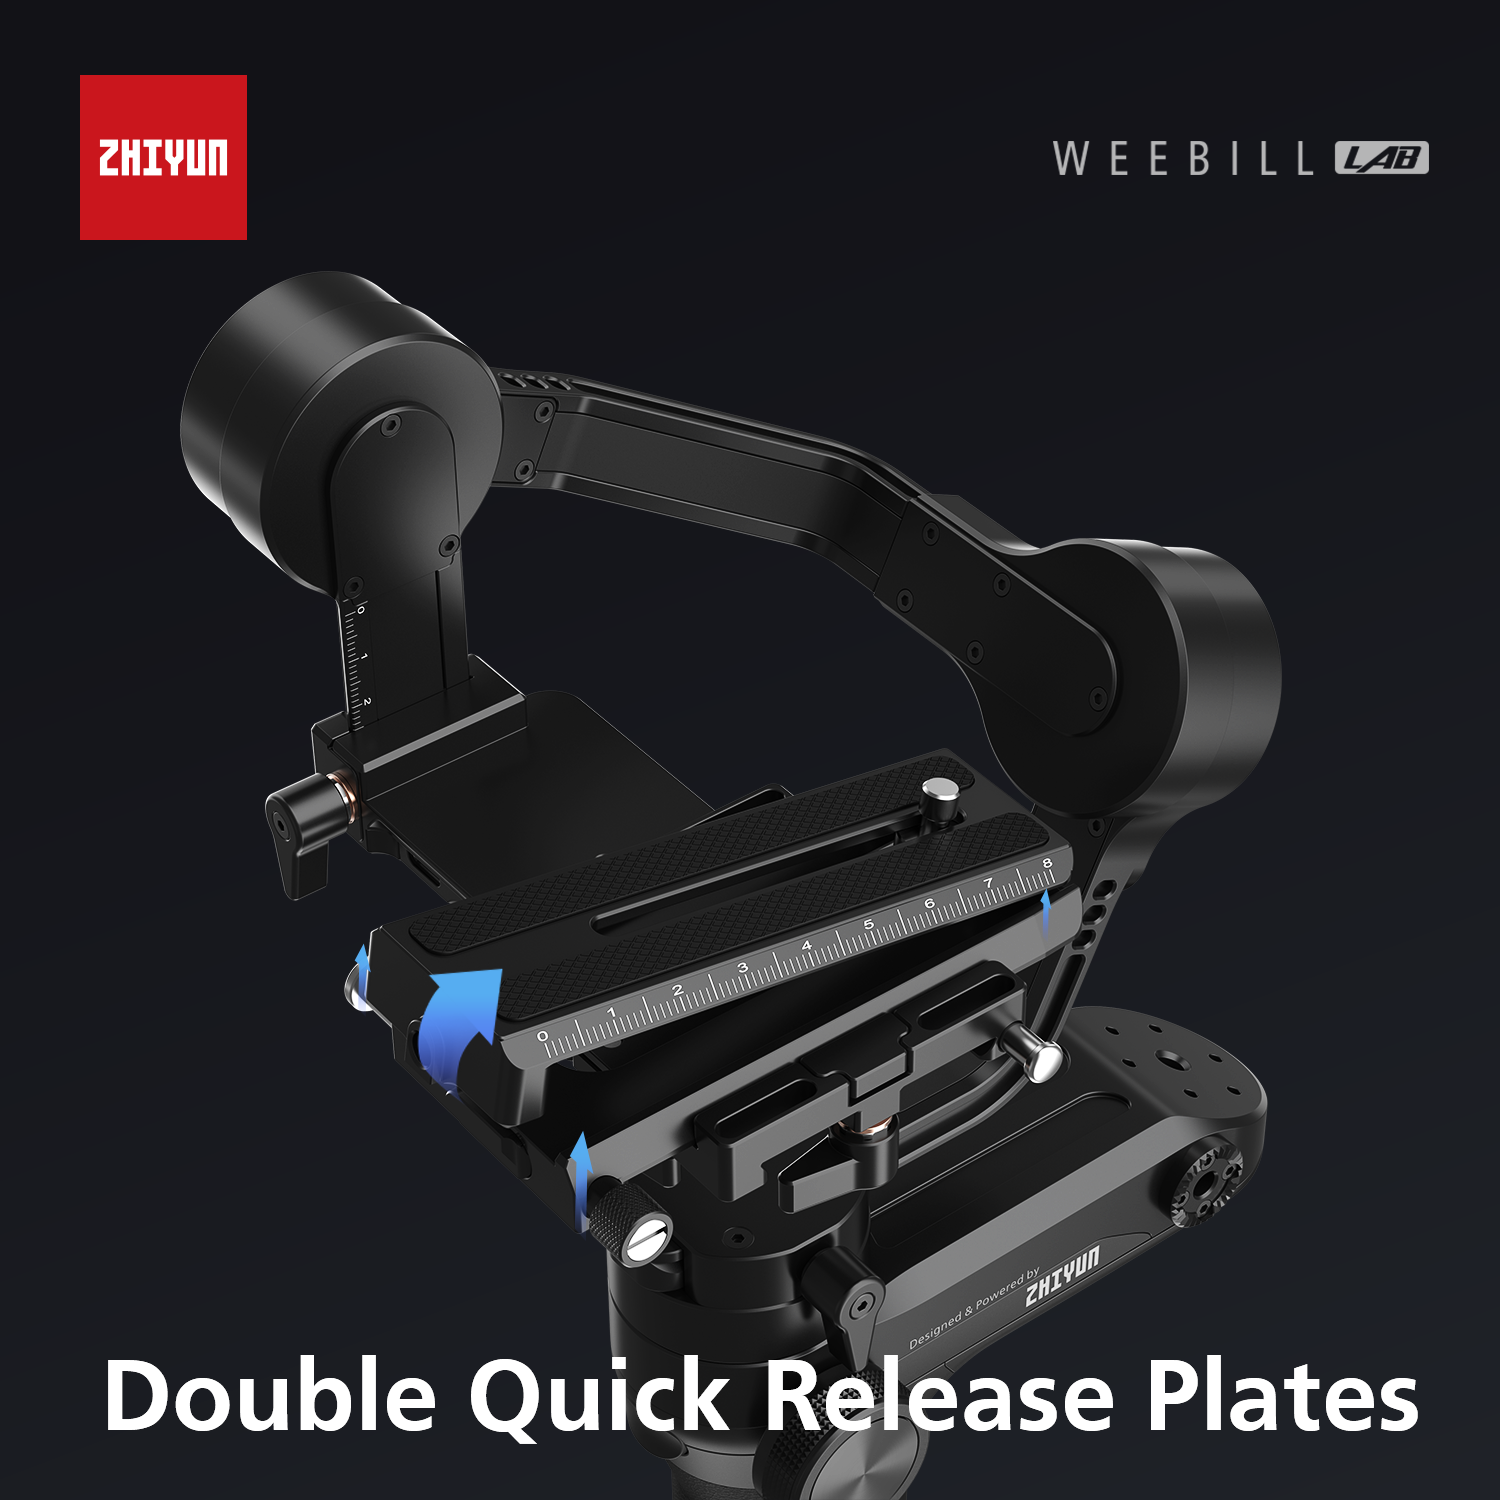 Double Quick Release Plates